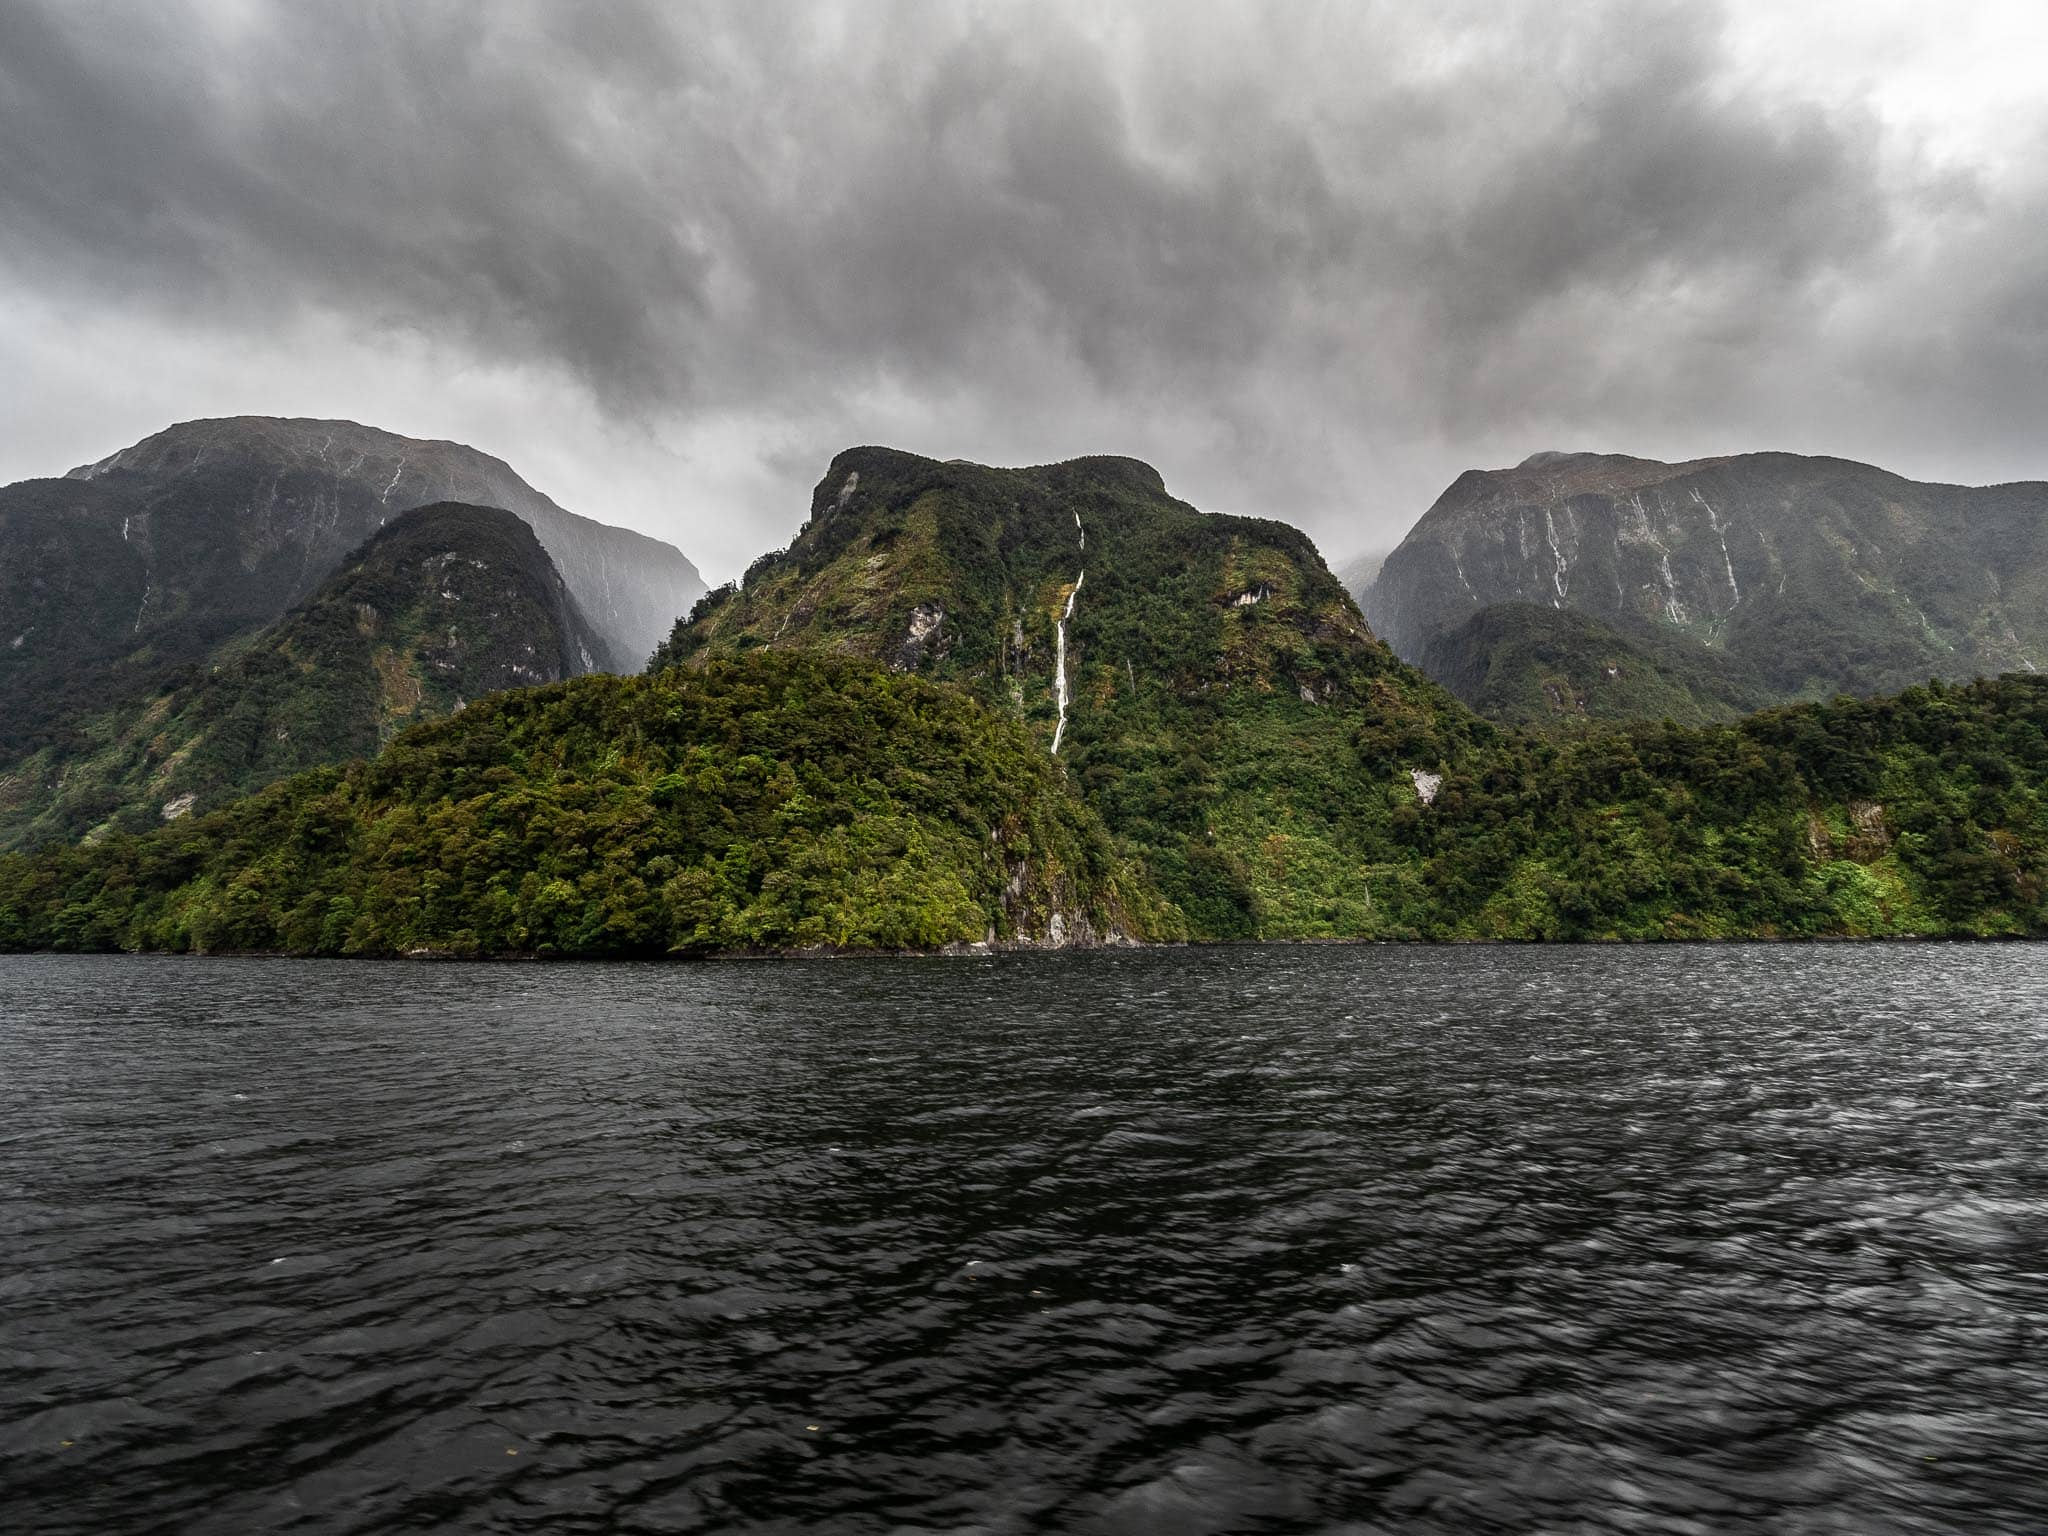 giant karst formations emerging from the water